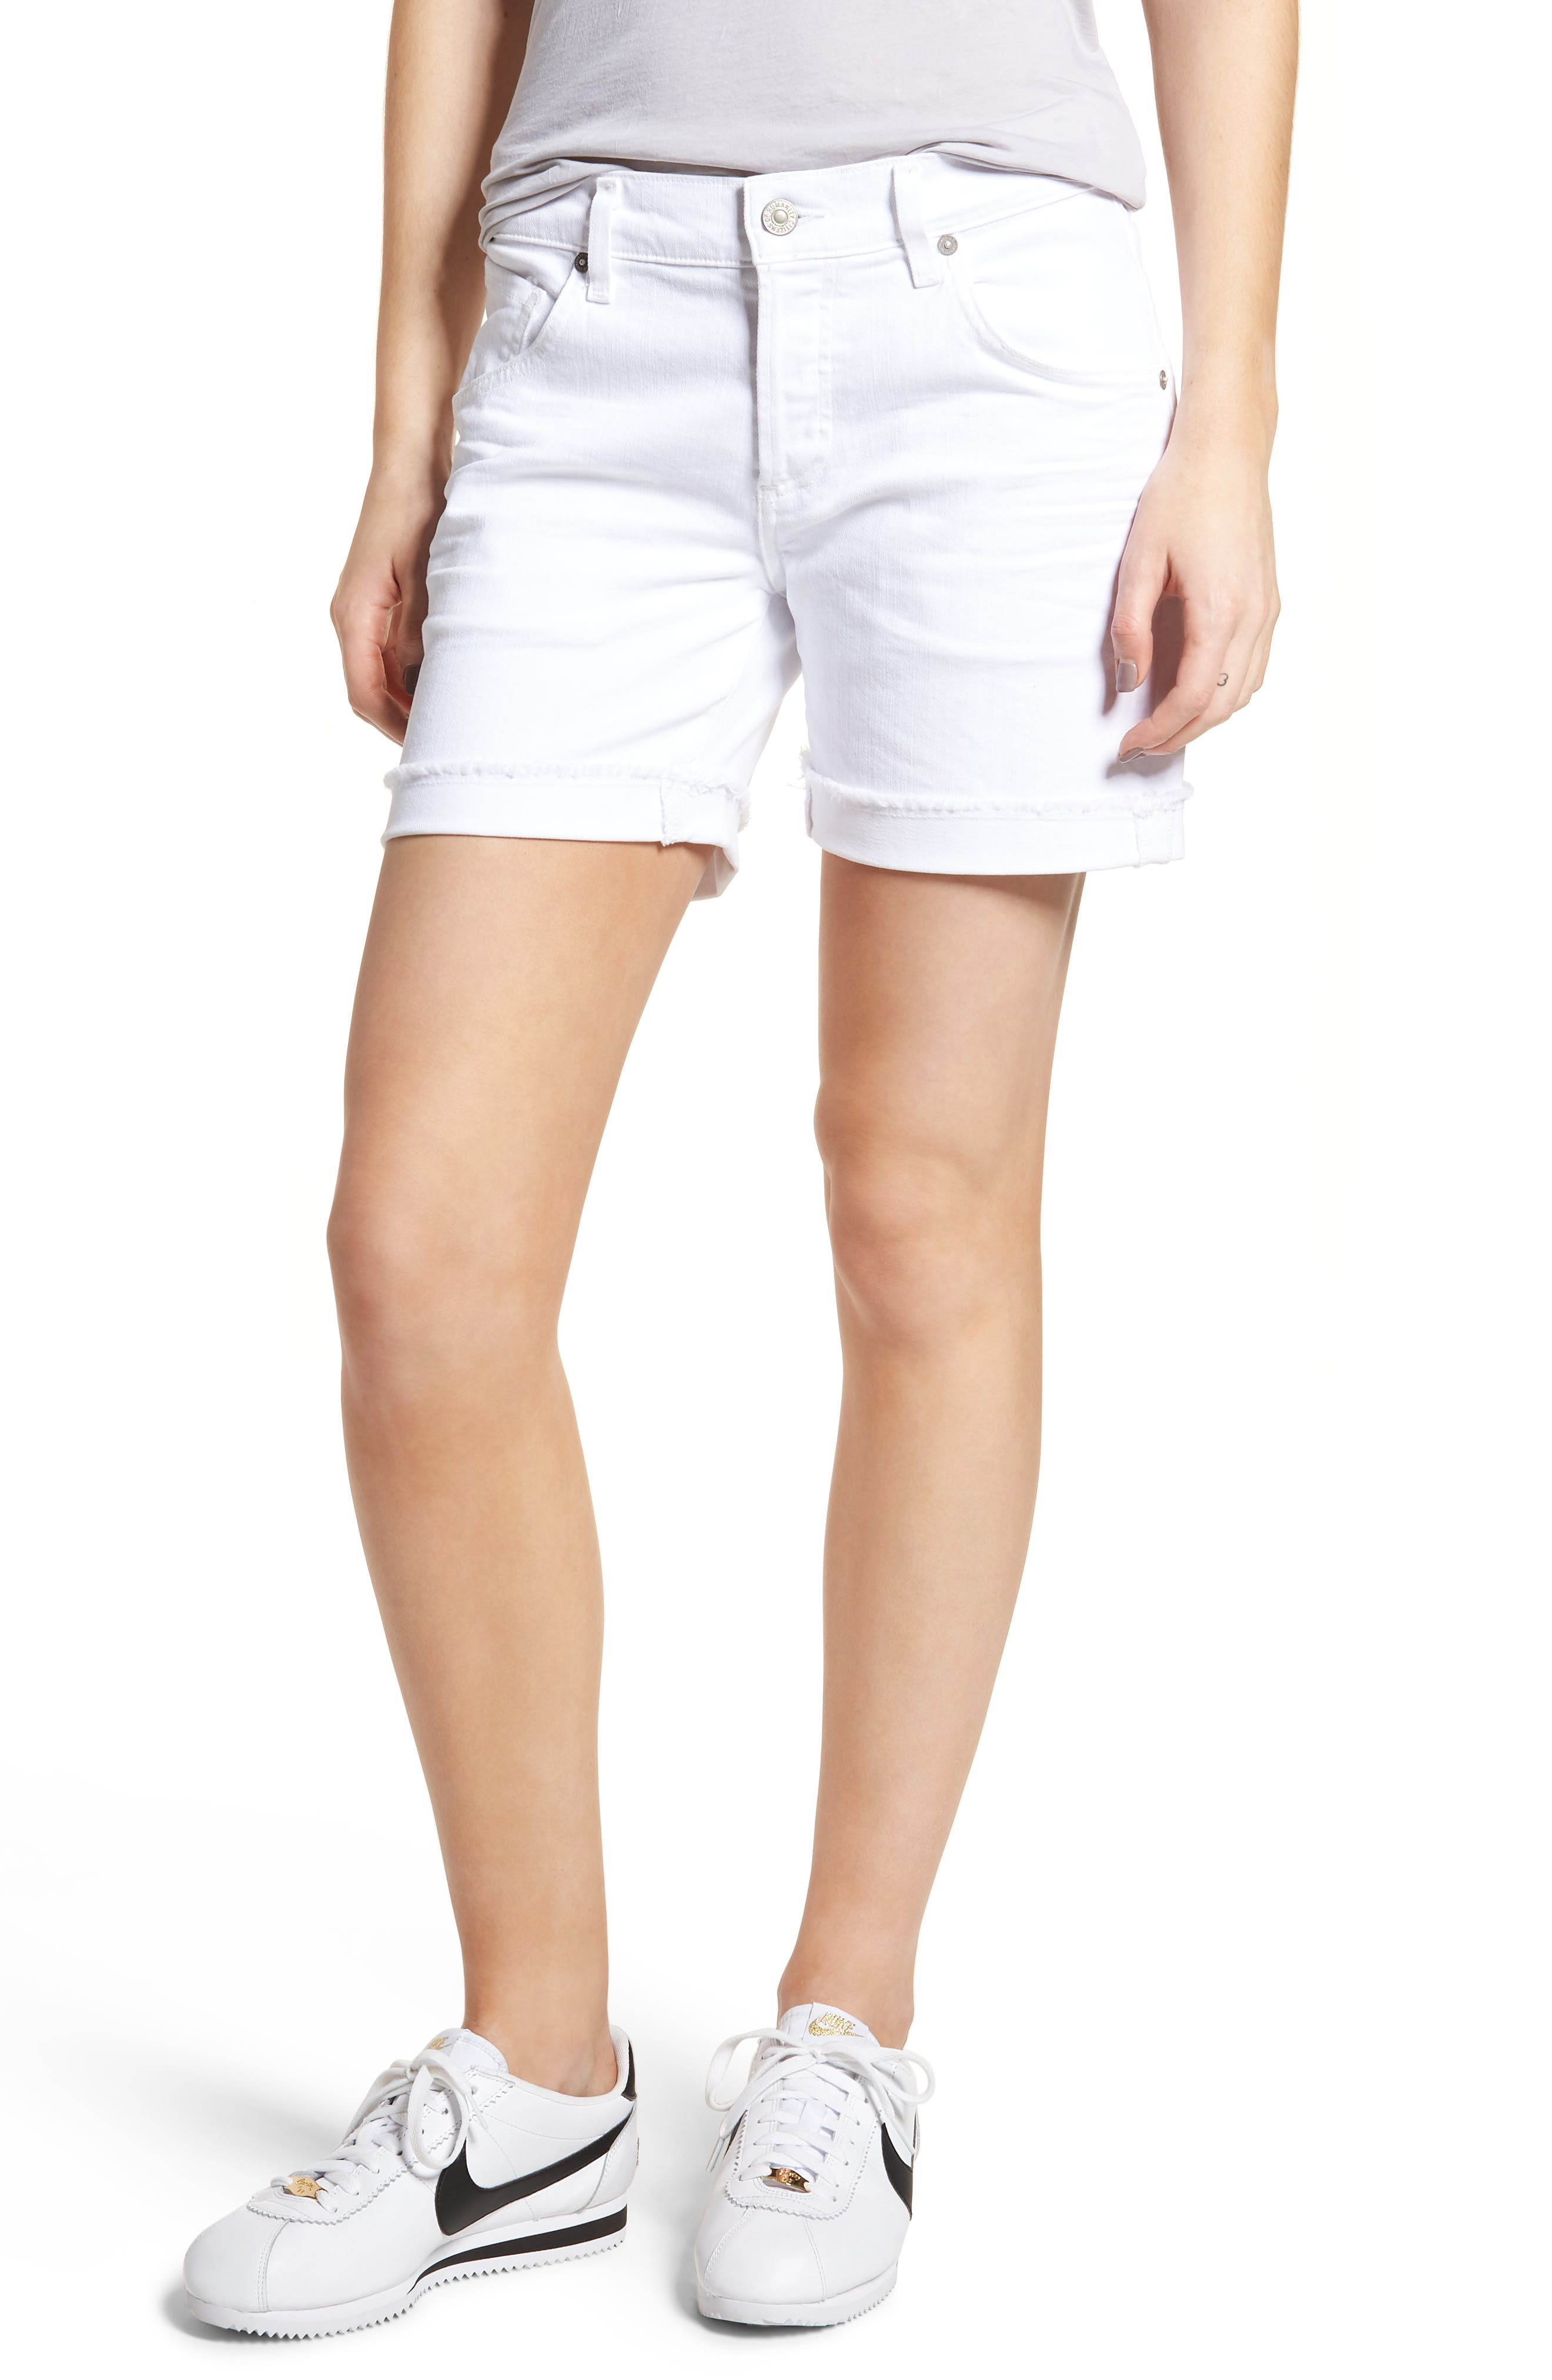 CITIZENS OF HUMANITY, Skyler Denim Shorts, Main thumbnail 1, color, OPTIC WHITE